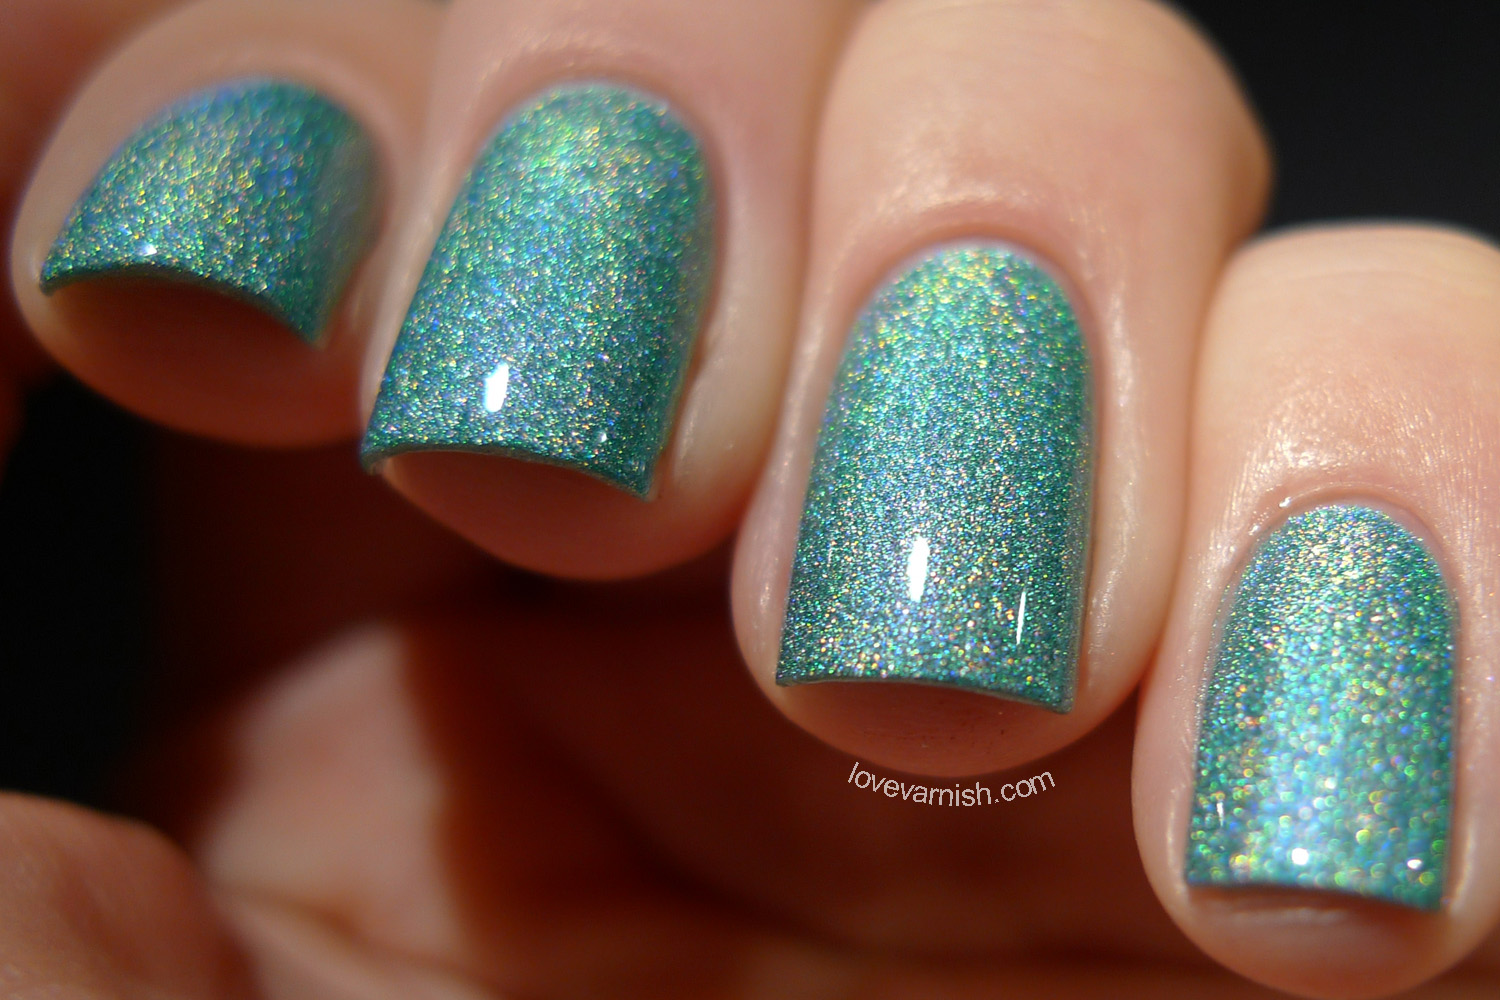 Catrice Luxury Lacquers Holomania Holo In One seafoam green holographic polish